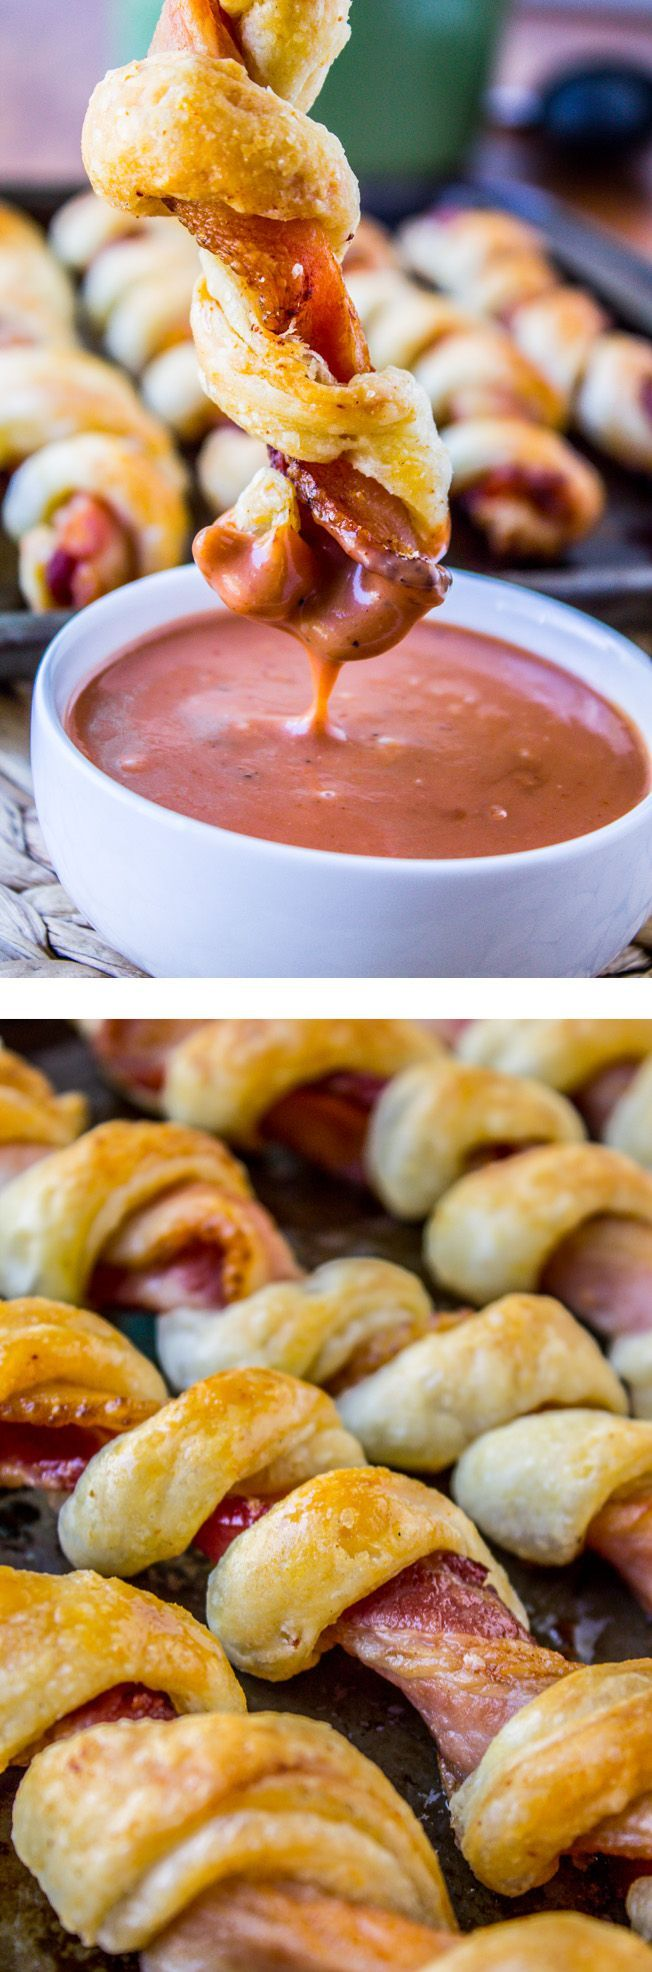 Puffy Bacon Twists w/ BBQ-Ranch Sauce from The Food Charlatan // Bacon twisted around buttery dough and baked til crisp. Easy side dish or appetizer for your summer parties!